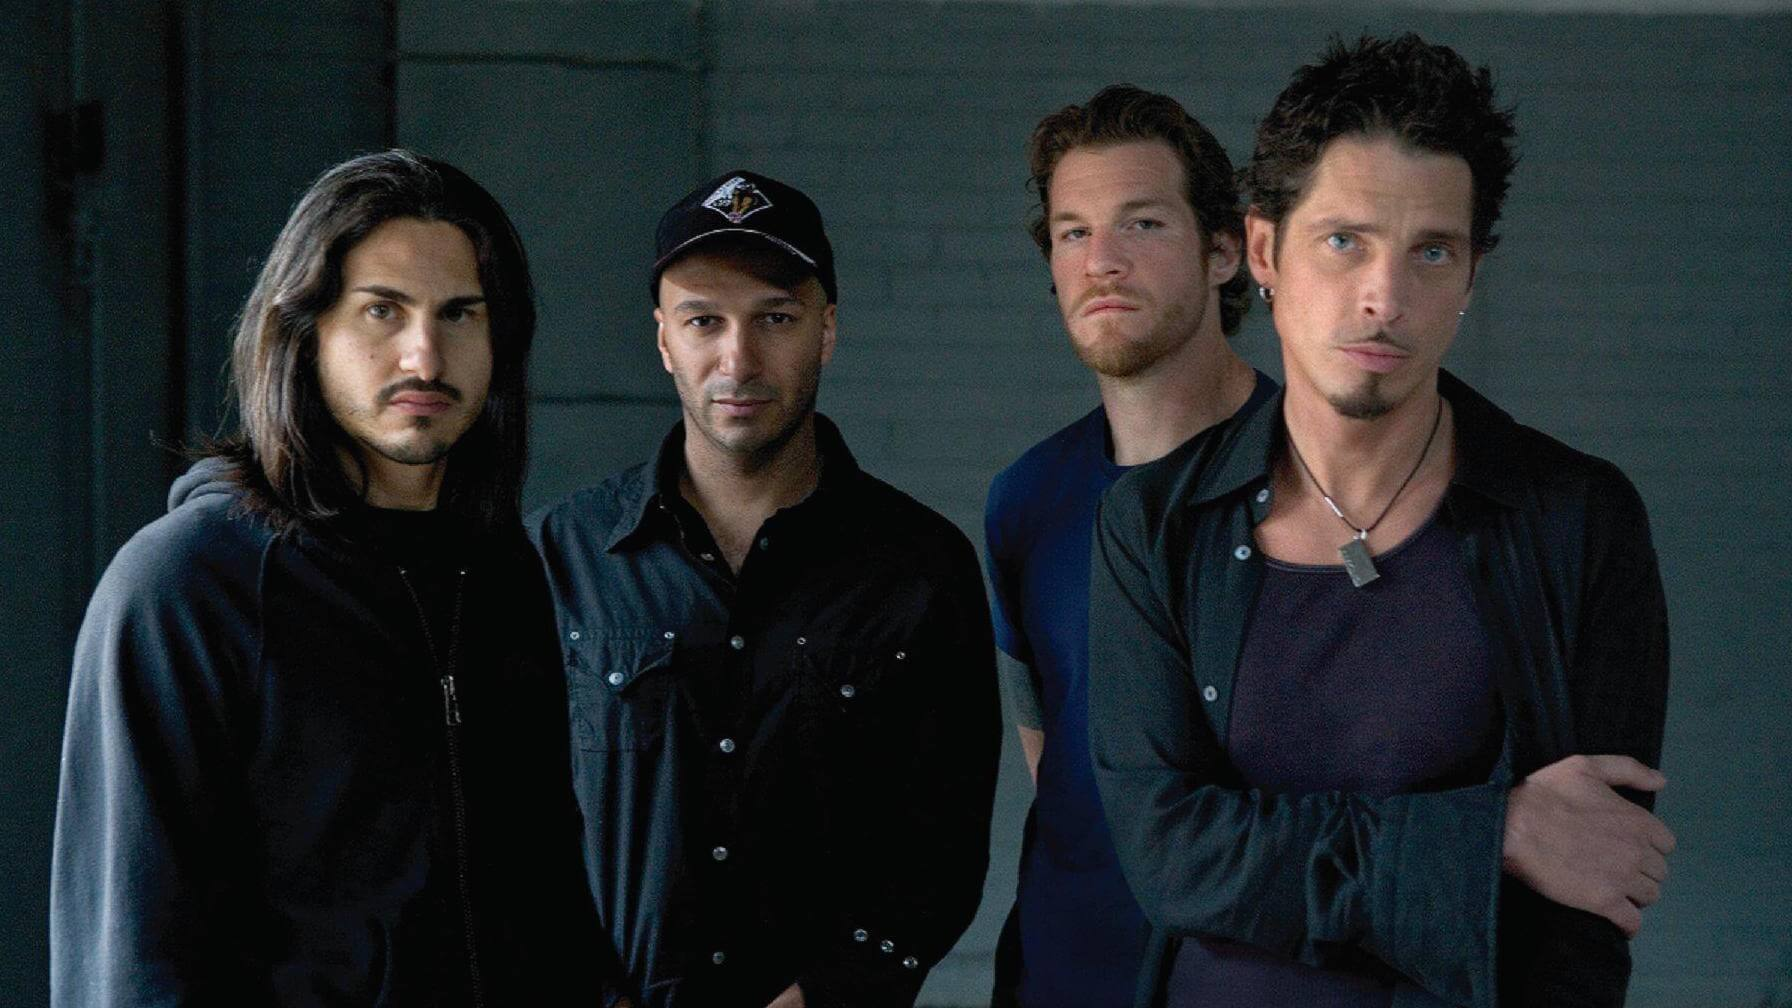 Audioslave - Did You Know?